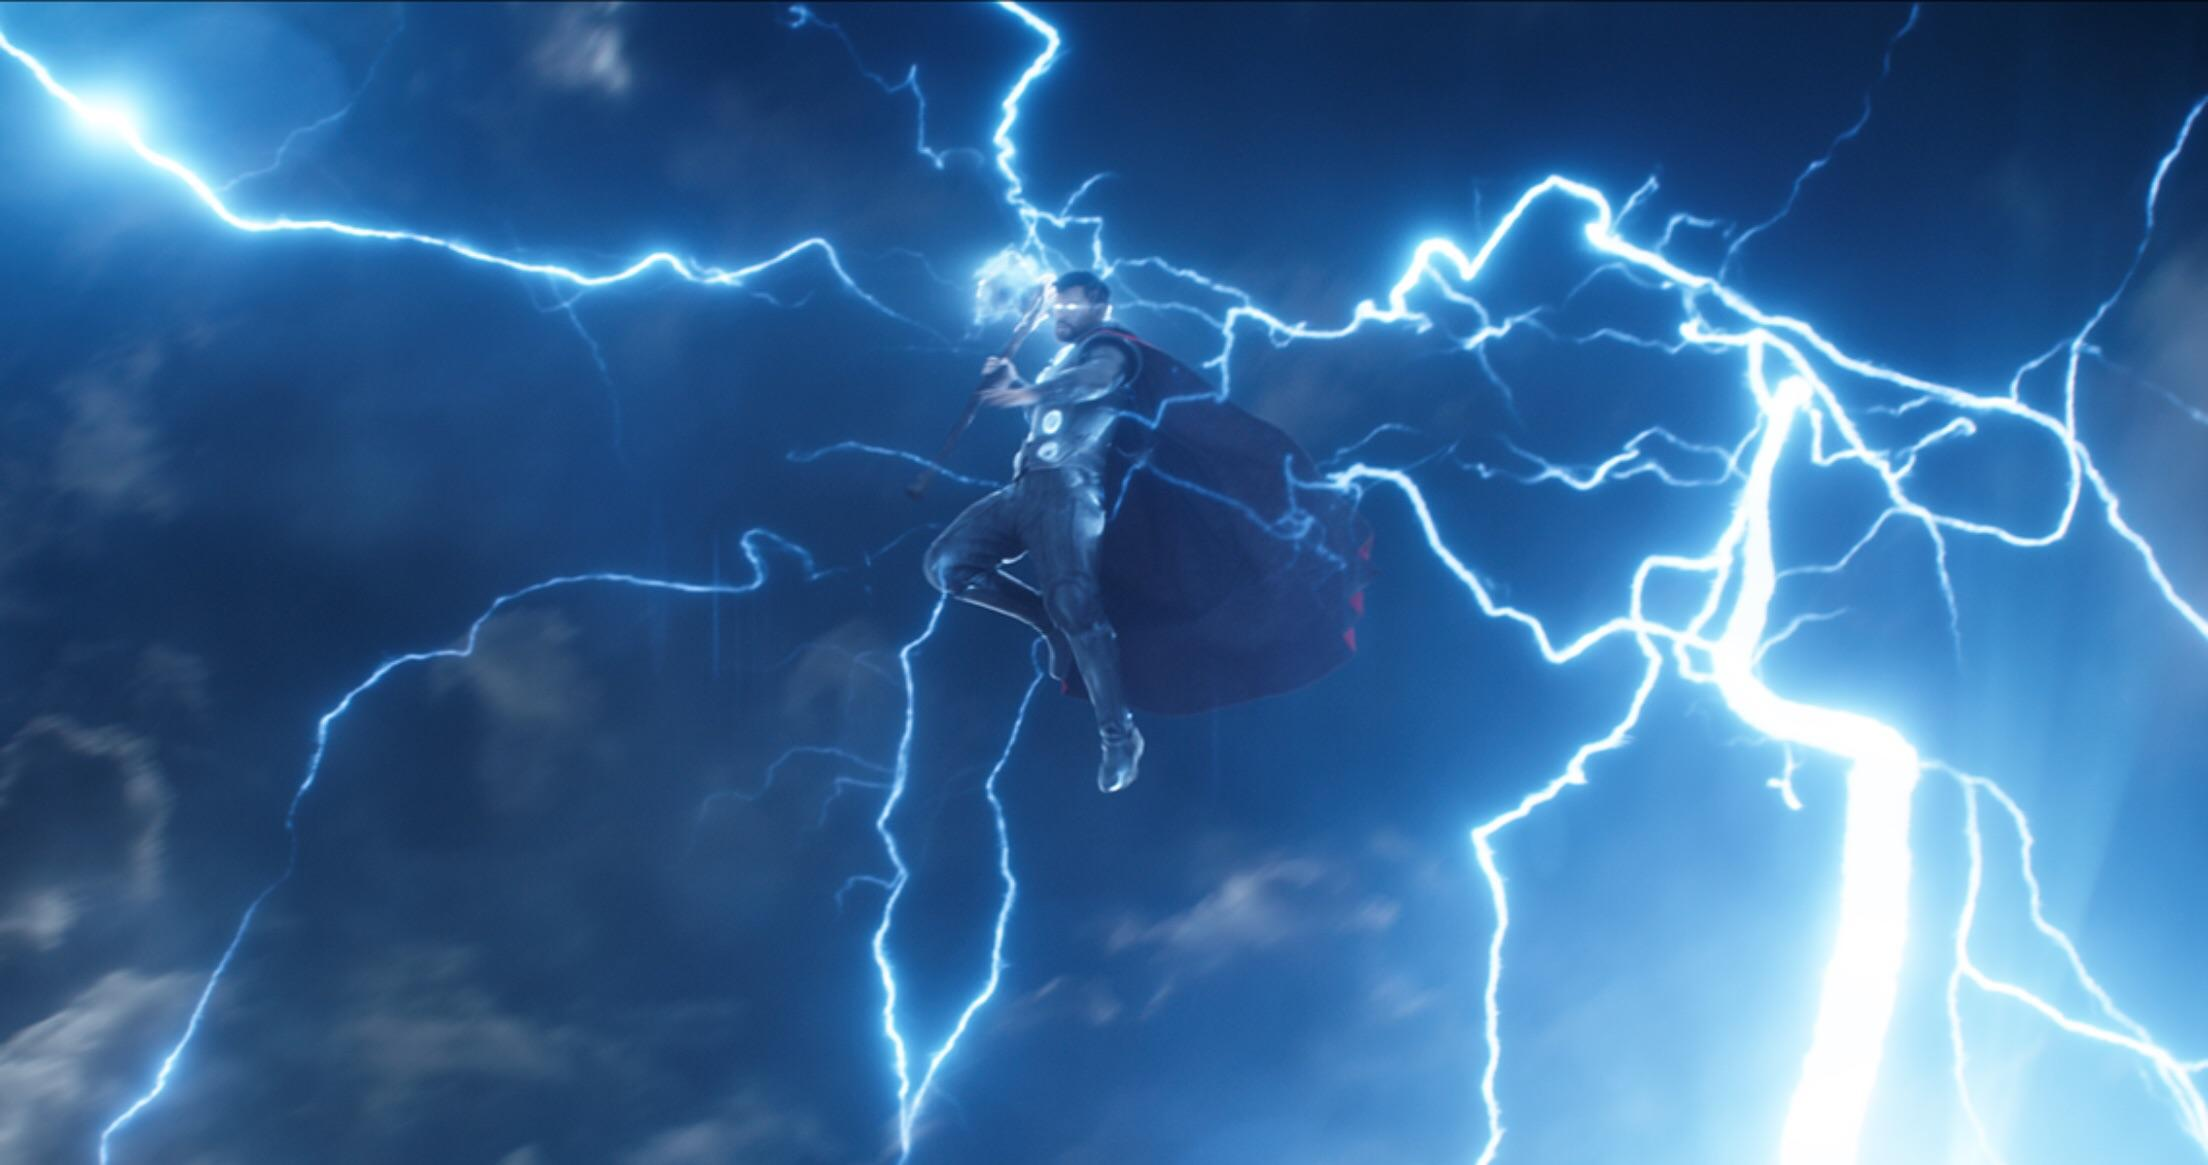 Cool Thor Wallpaper marvelstudios 2208x1165